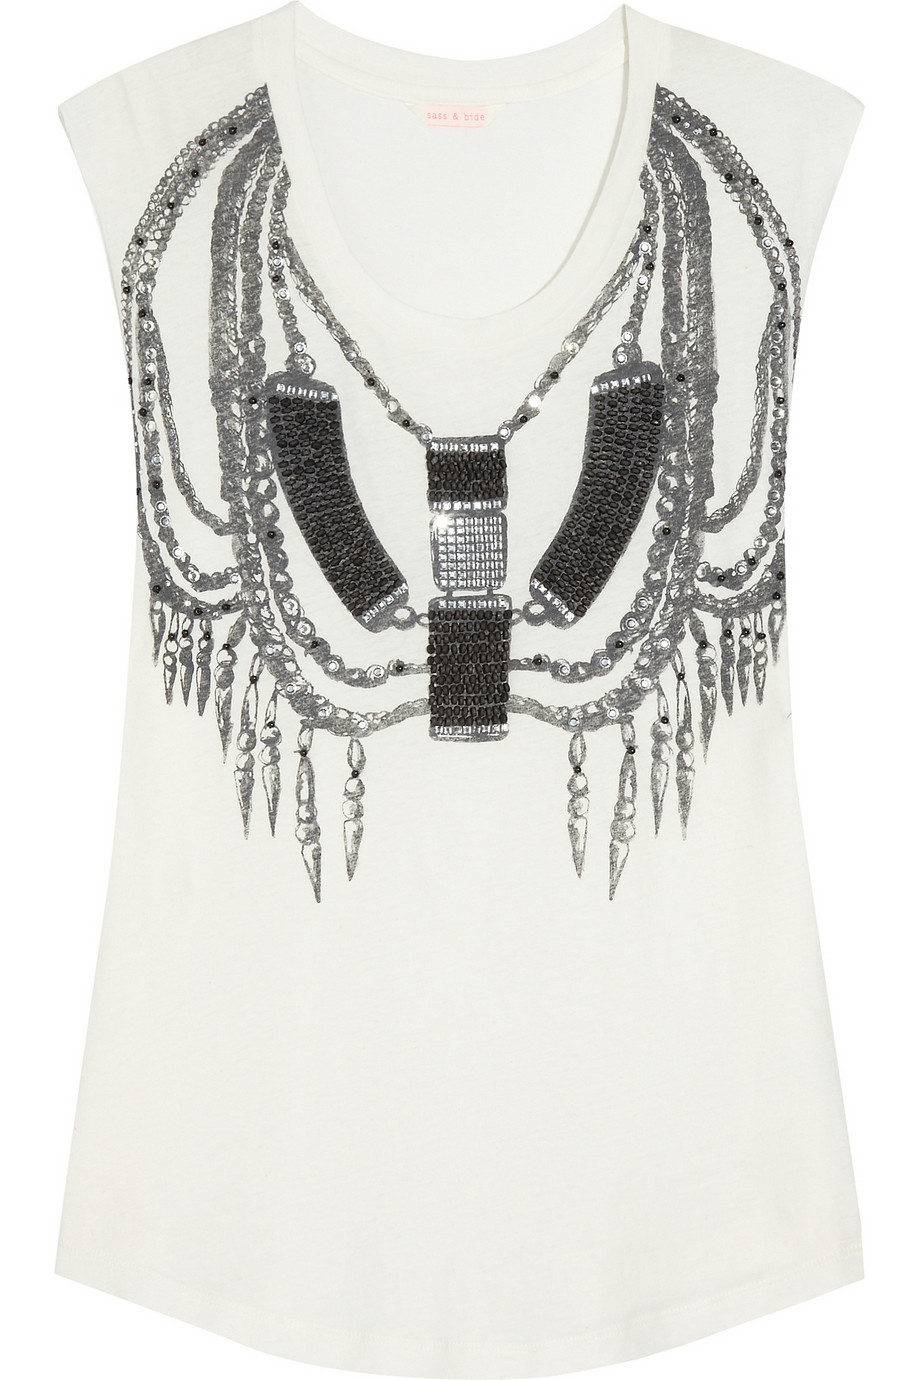 Sass & bide   Tough It Out embellished jersey top   NET-A-PORTER.COM_files.jpg